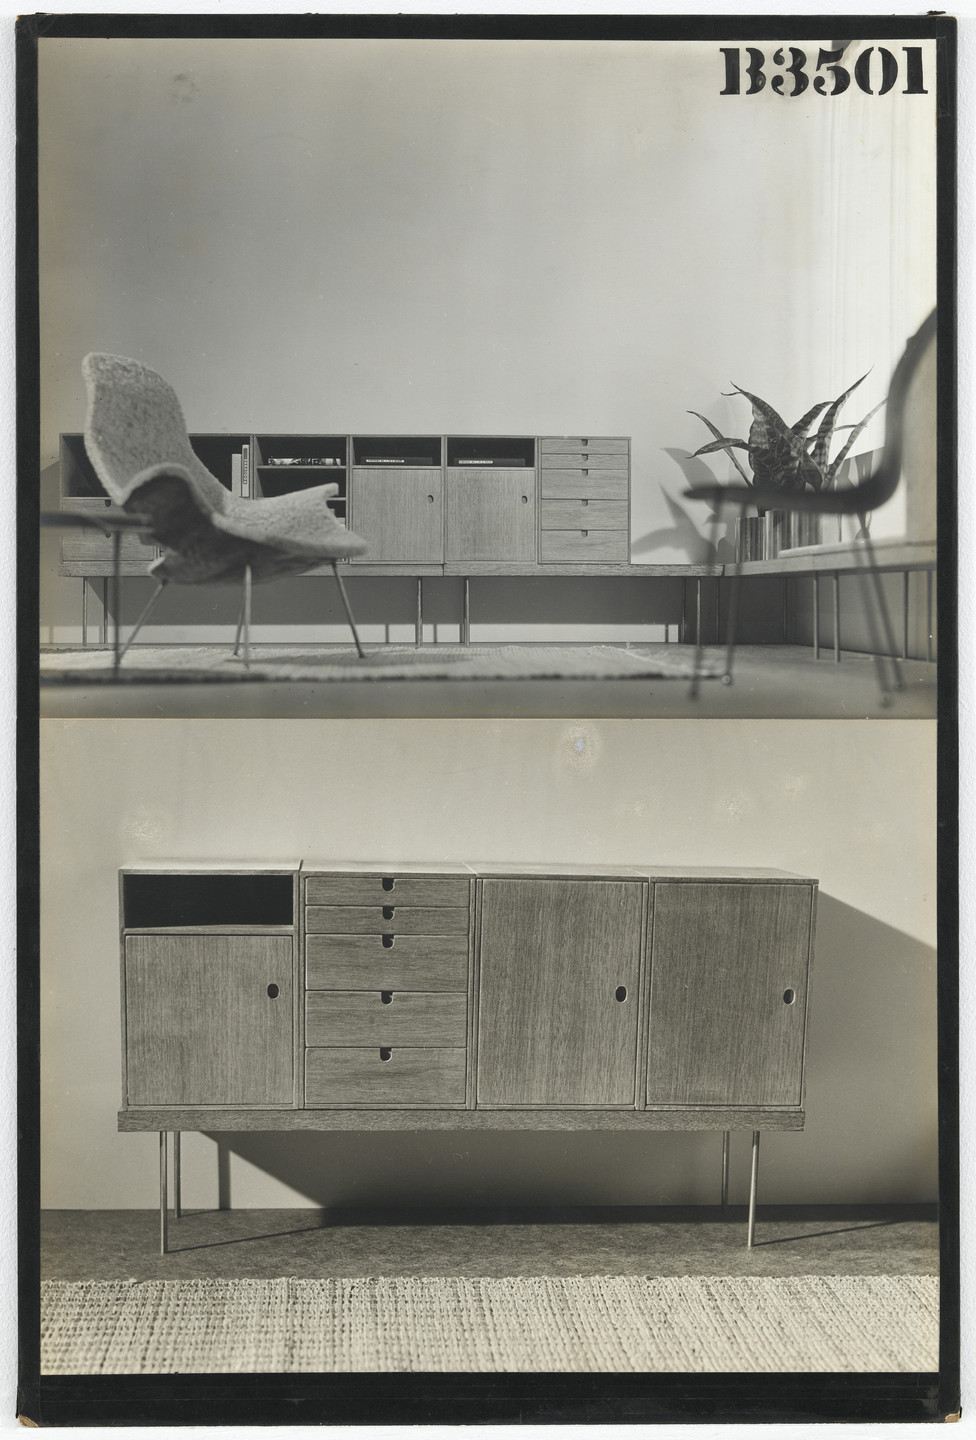 Charles Eames, Eero Saarinen. Entry Panel for MoMA Competition for Organic Design in Home Furnishings. 1940